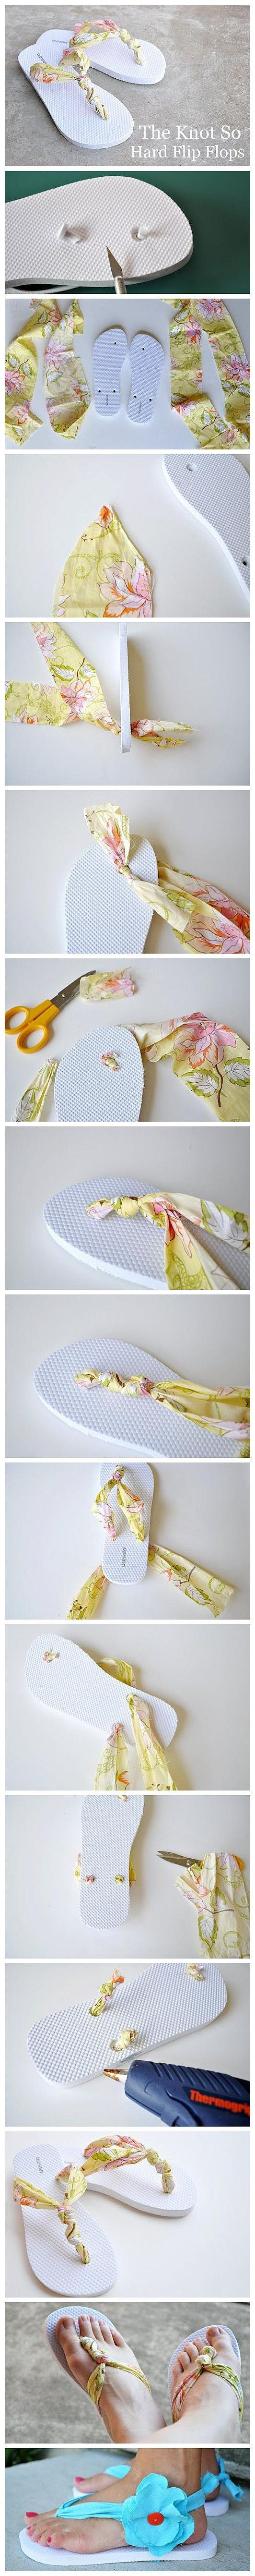 spring and summer are coming after you give yourself a pedicure you might want some awesome flip flops. buy the cheap 2$ old navy kind and make them your own with this tutorial.